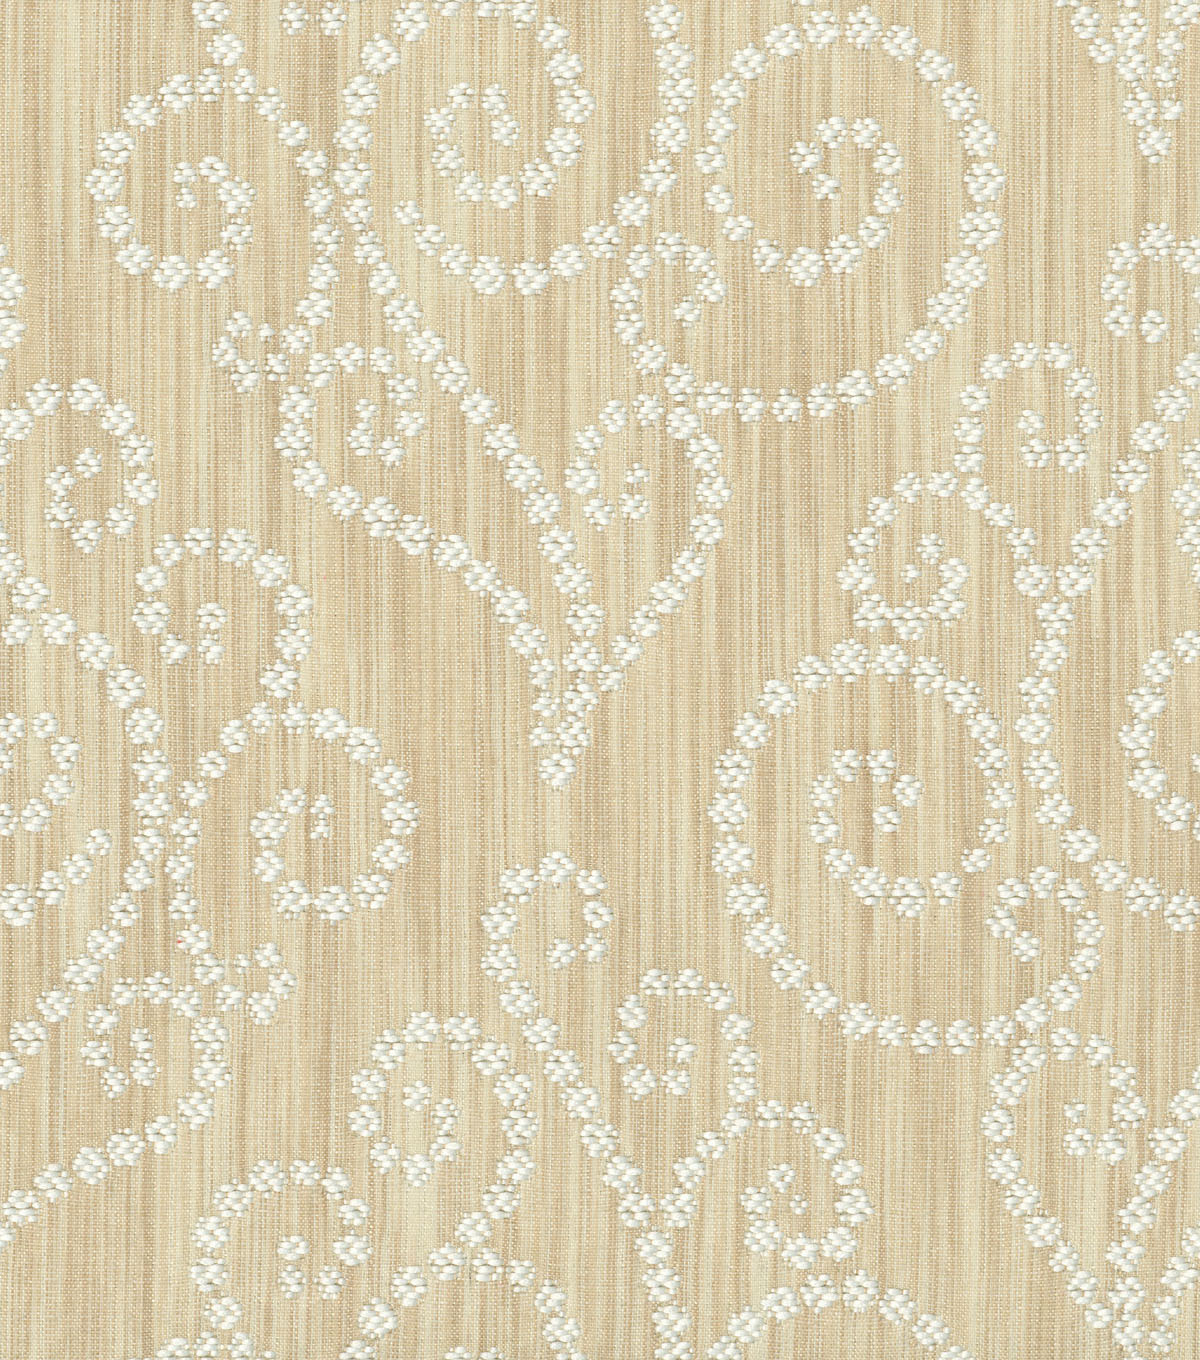 Home Decor 8\u0022x8\u0022 Fabric Swatch-Waverly Synergy Parchment